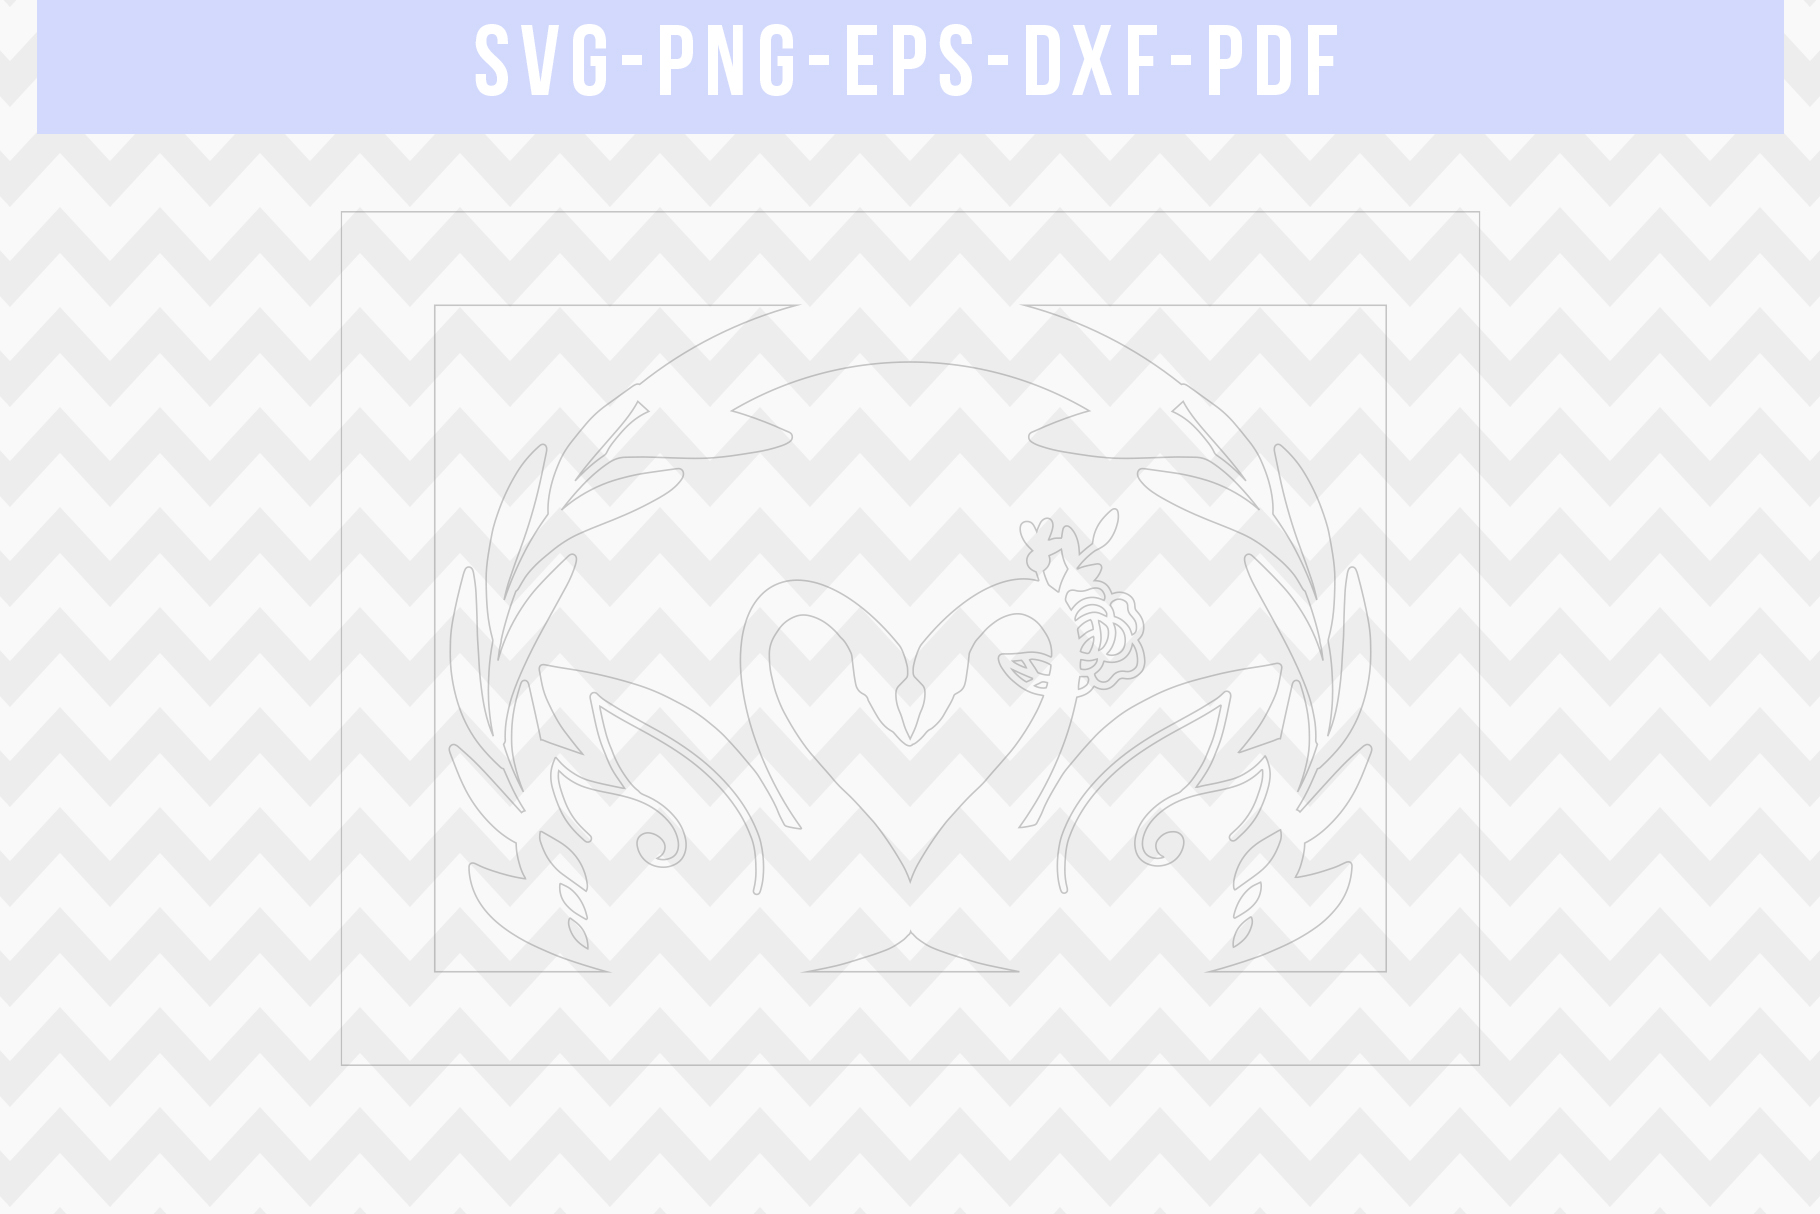 Wedding Swan Frame Papercut Template, Couple SVG, DXF, PDF example image 5